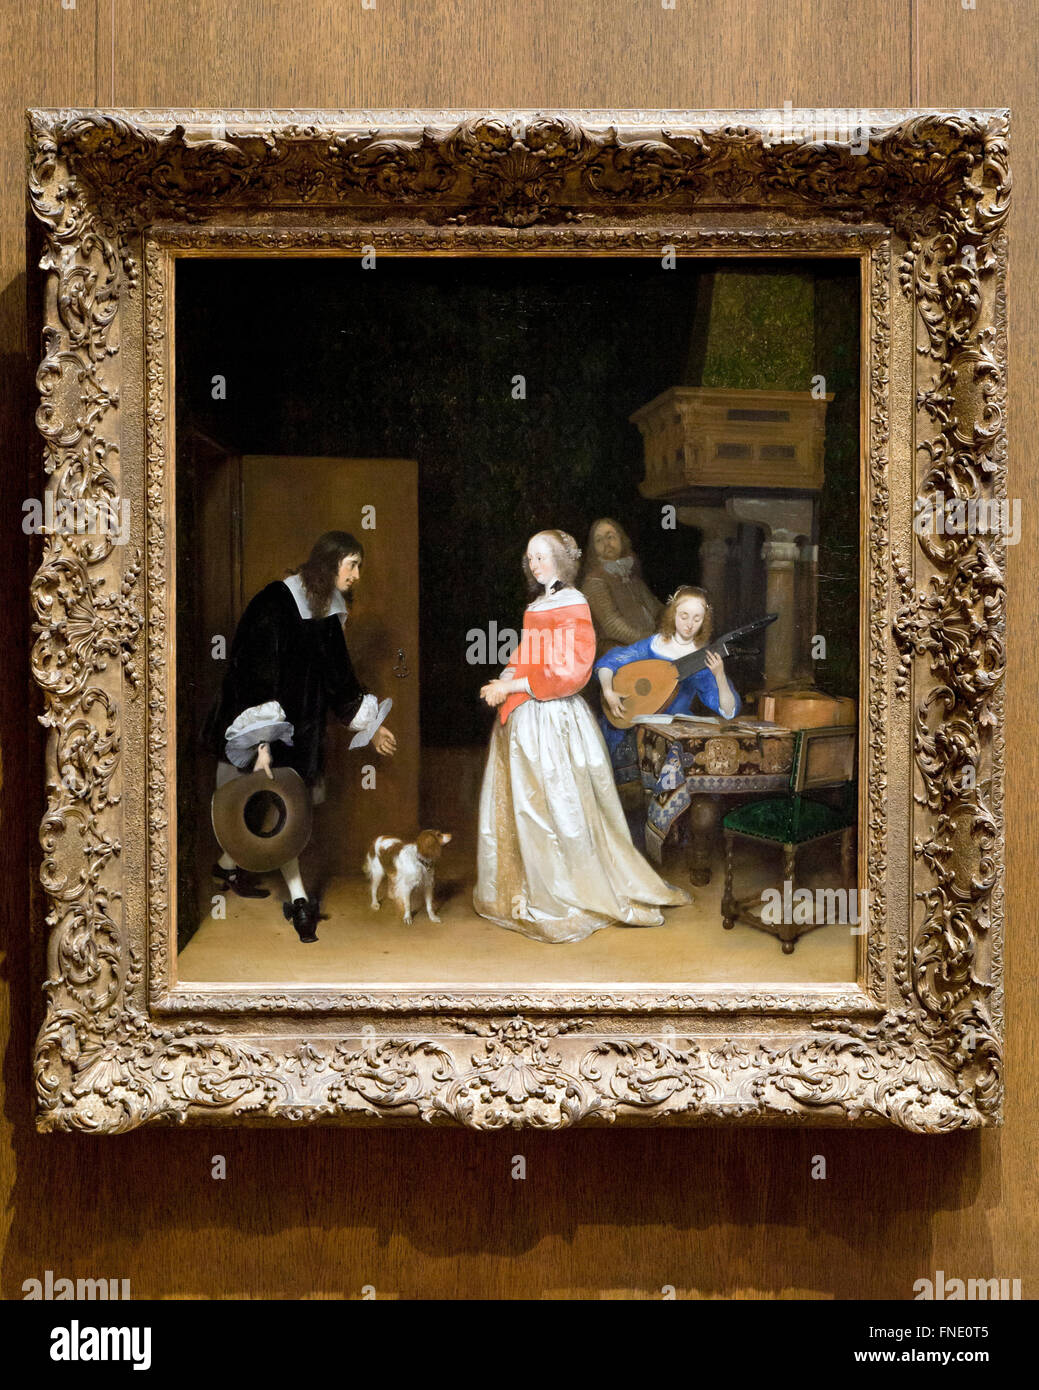 The Suitor's Visit by Gerard ter Borch the Younger, circa 1658 - Stock Image